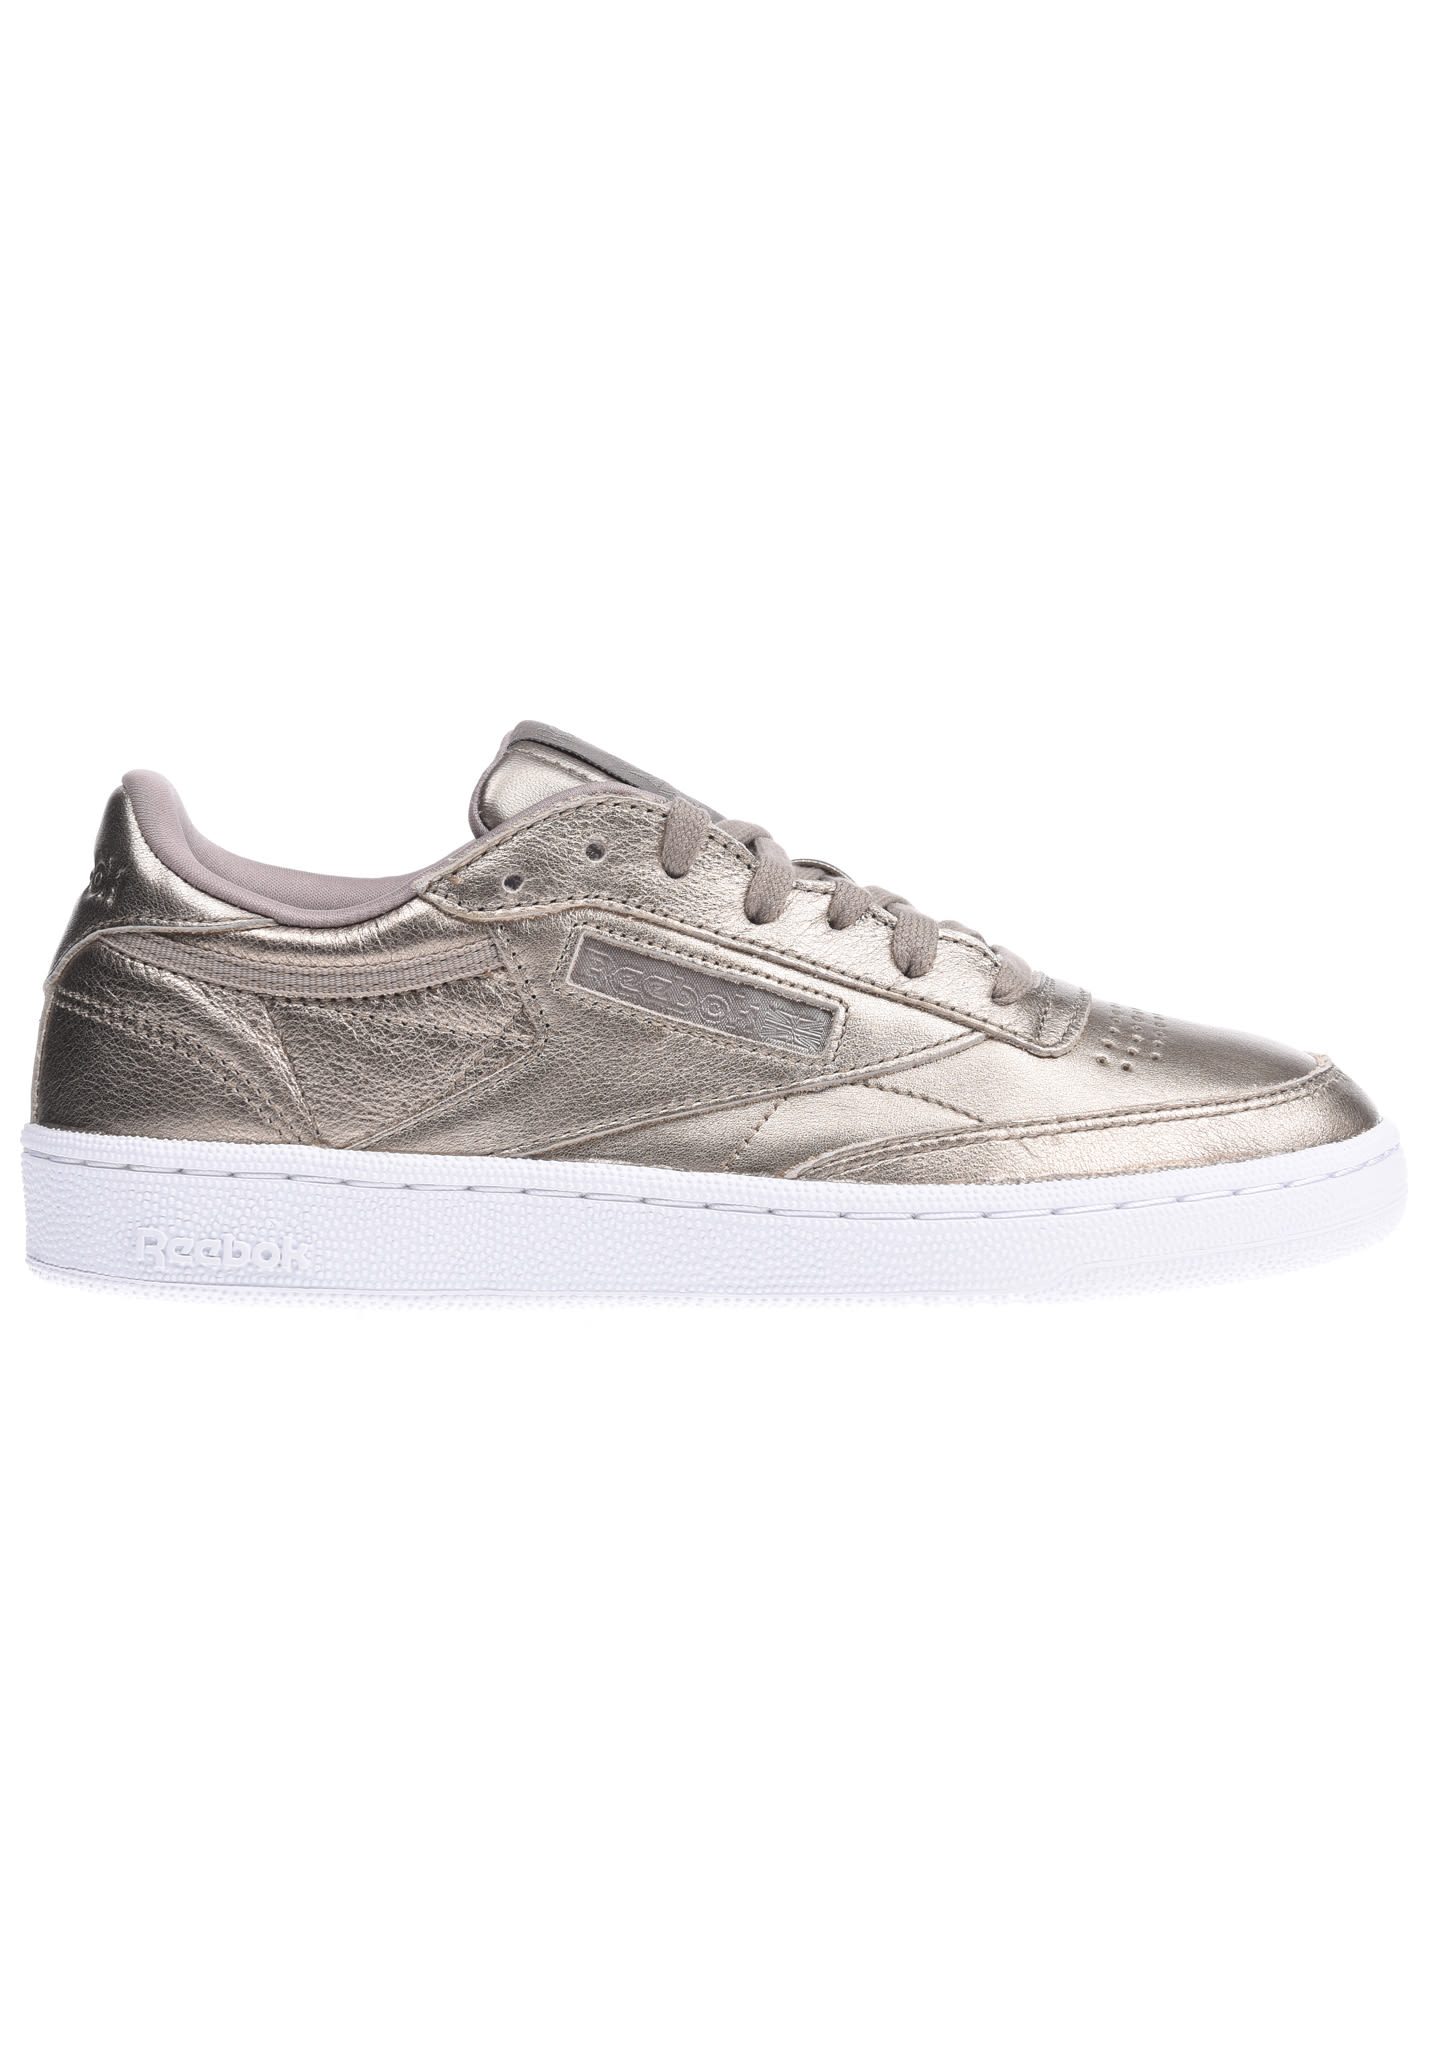 Or Reebok C 85 Baskets Melted Pour Metal Femme Club 4LRj53A